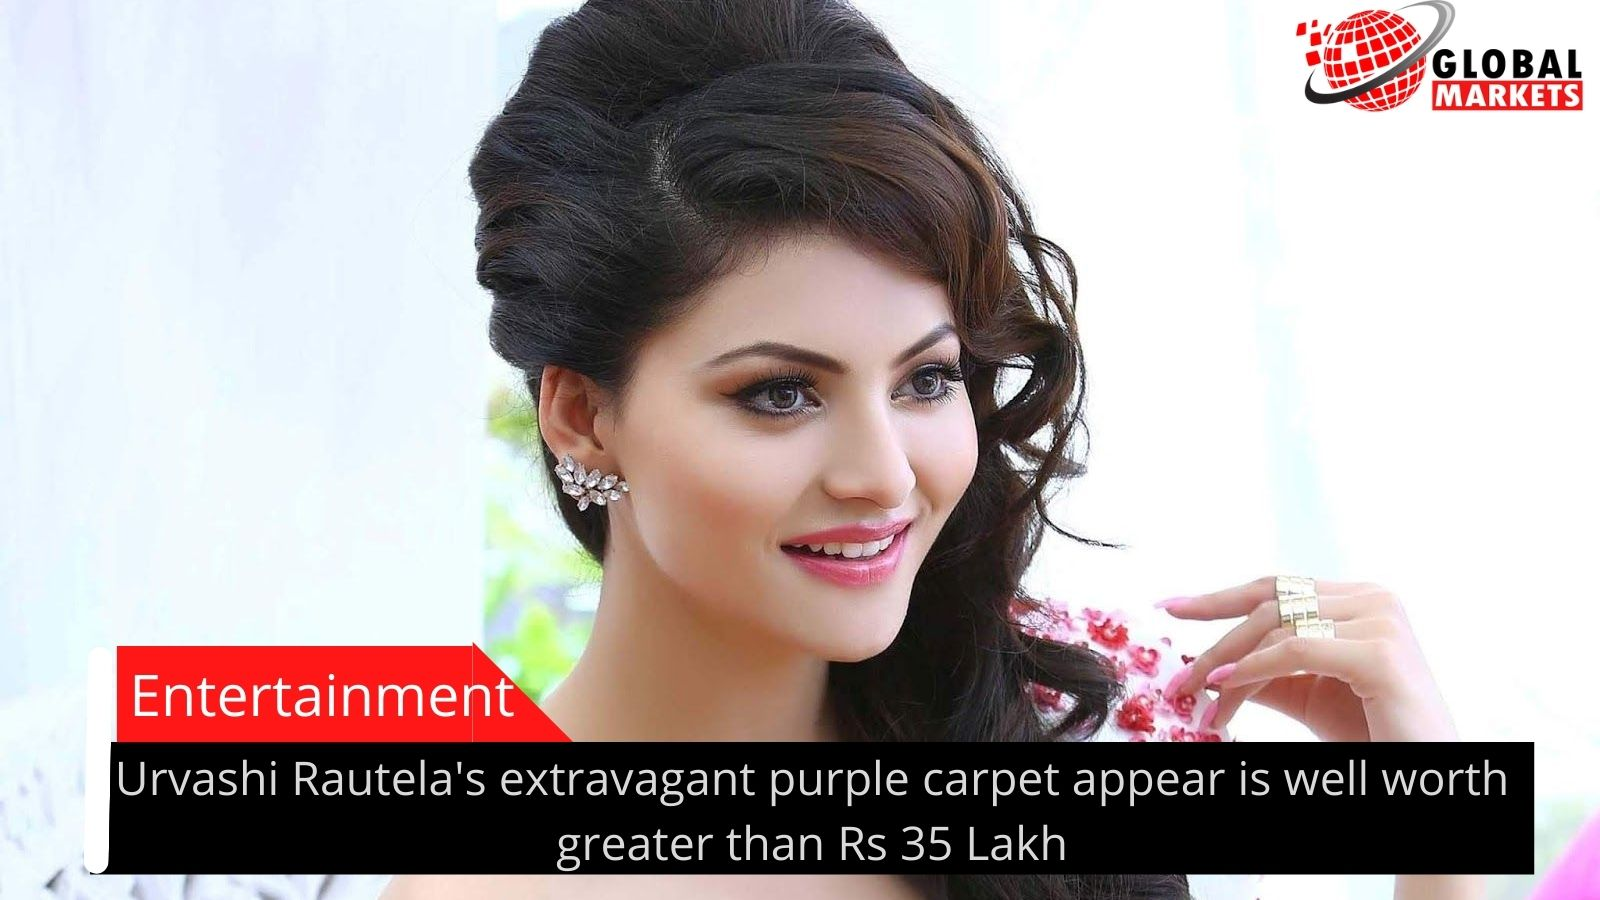 Urvashi Rautela's extravagant purple carpet appear is well worth greater than Rs 35 Lakh